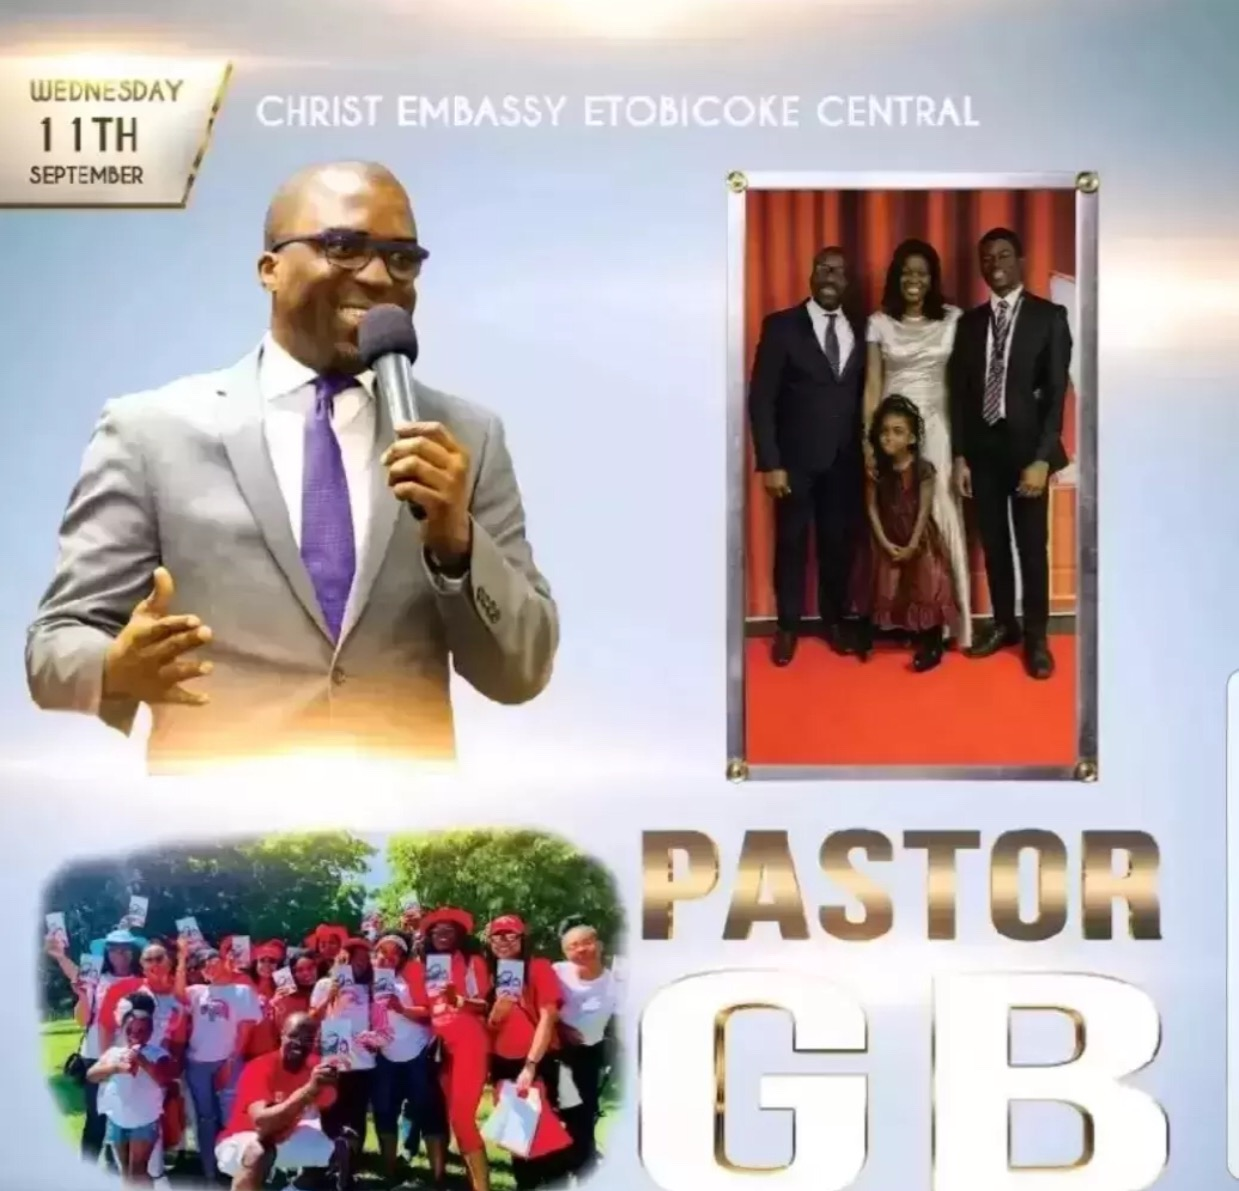 Happy birthday Dear Pastor GB!